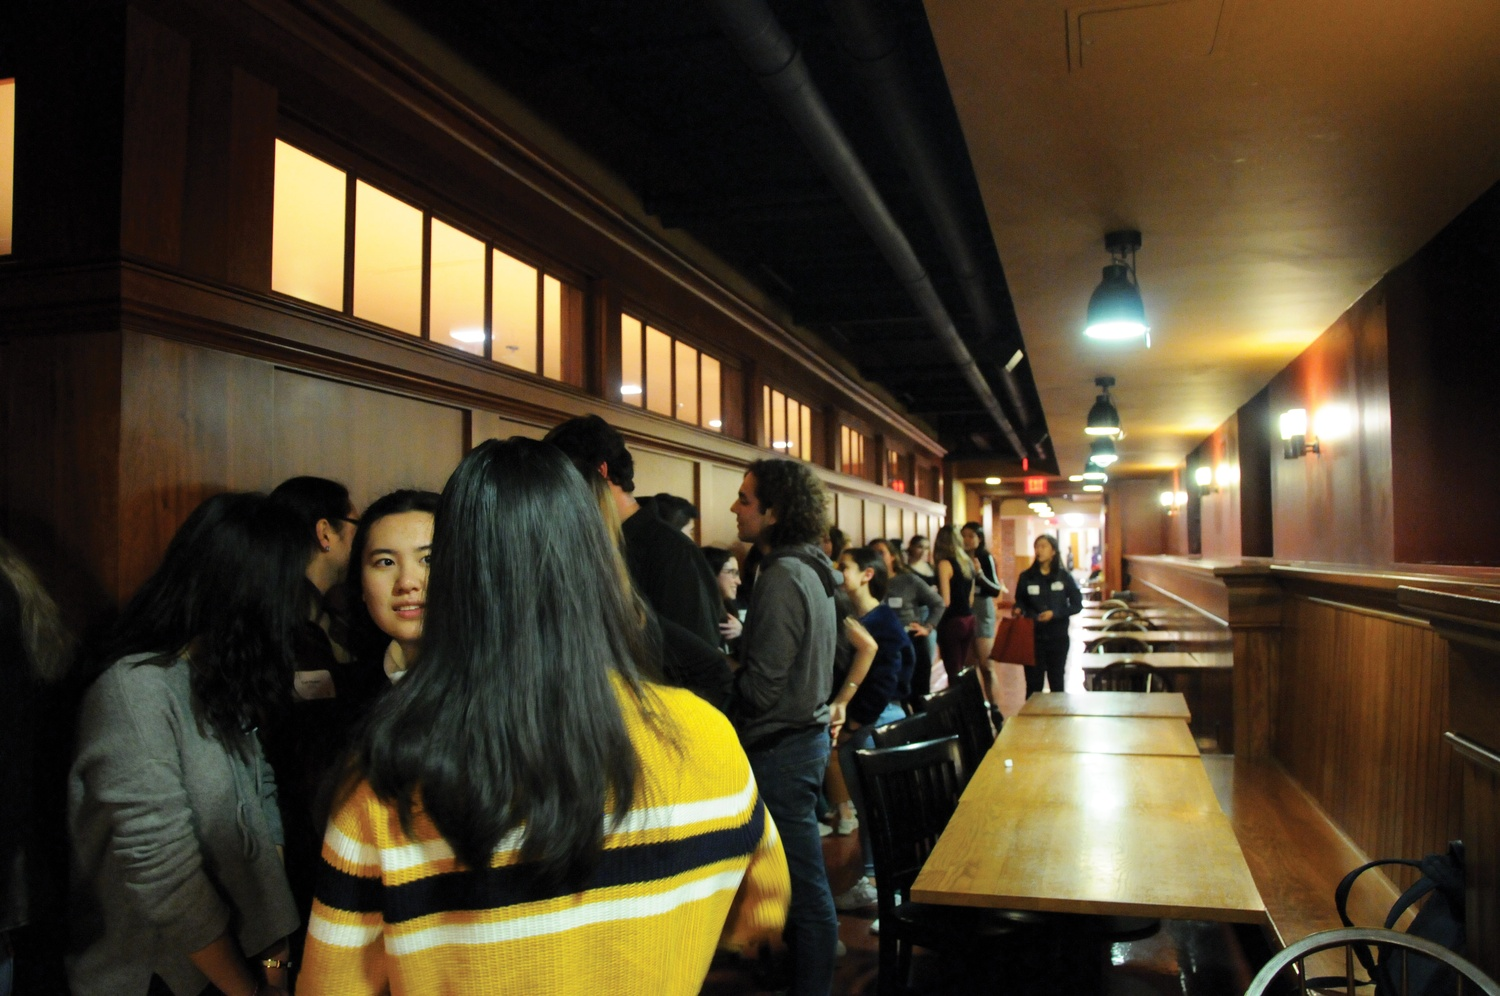 The Fleur-de-Lis, a Registered Social Organization, hosted an event during the first-ever RSO rush in February 2019.